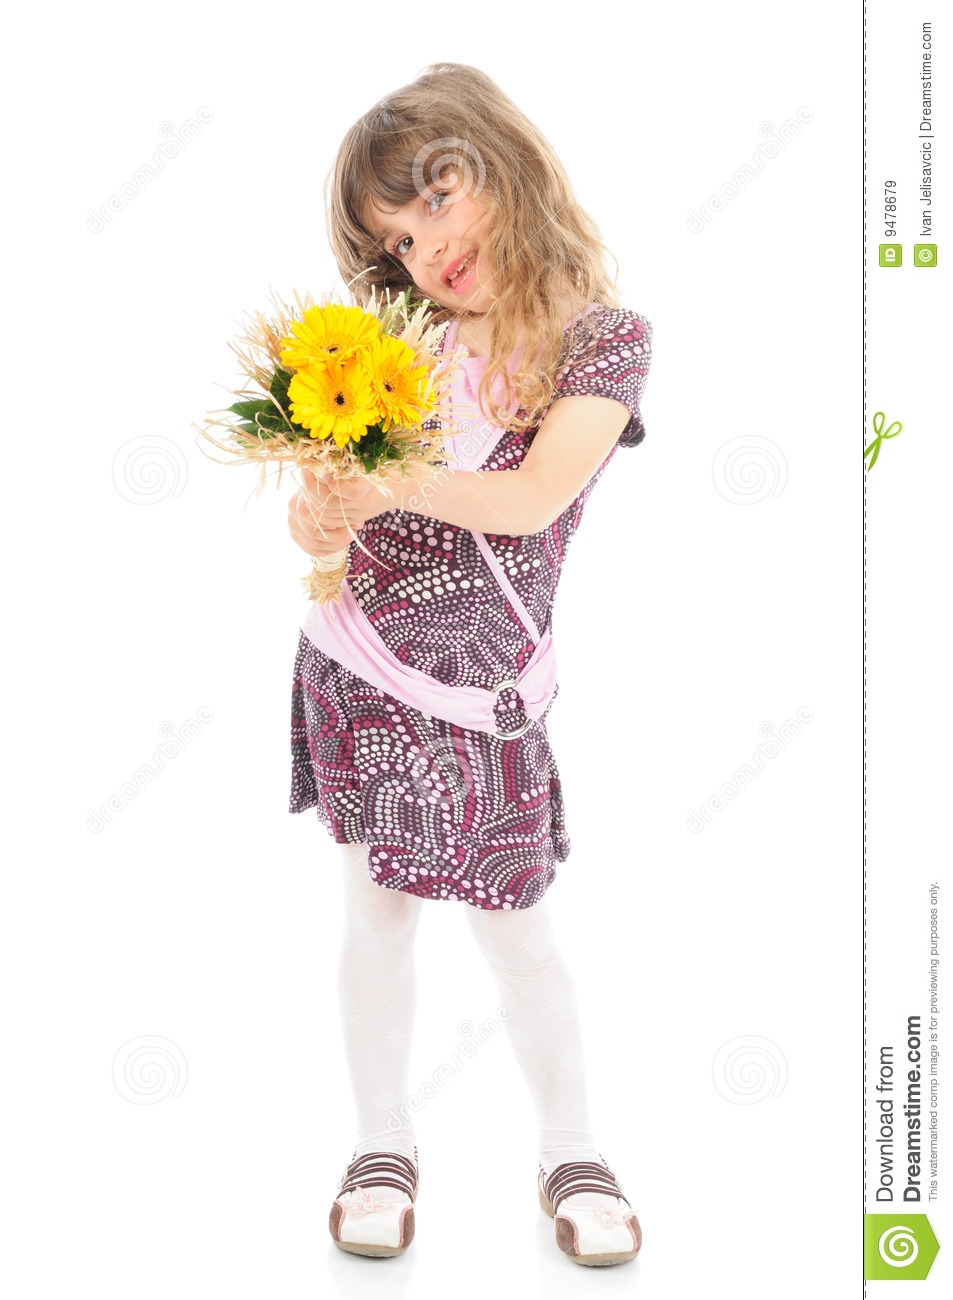 Happy Little Girl Holding Flowers Stock Image - Image: 9478679